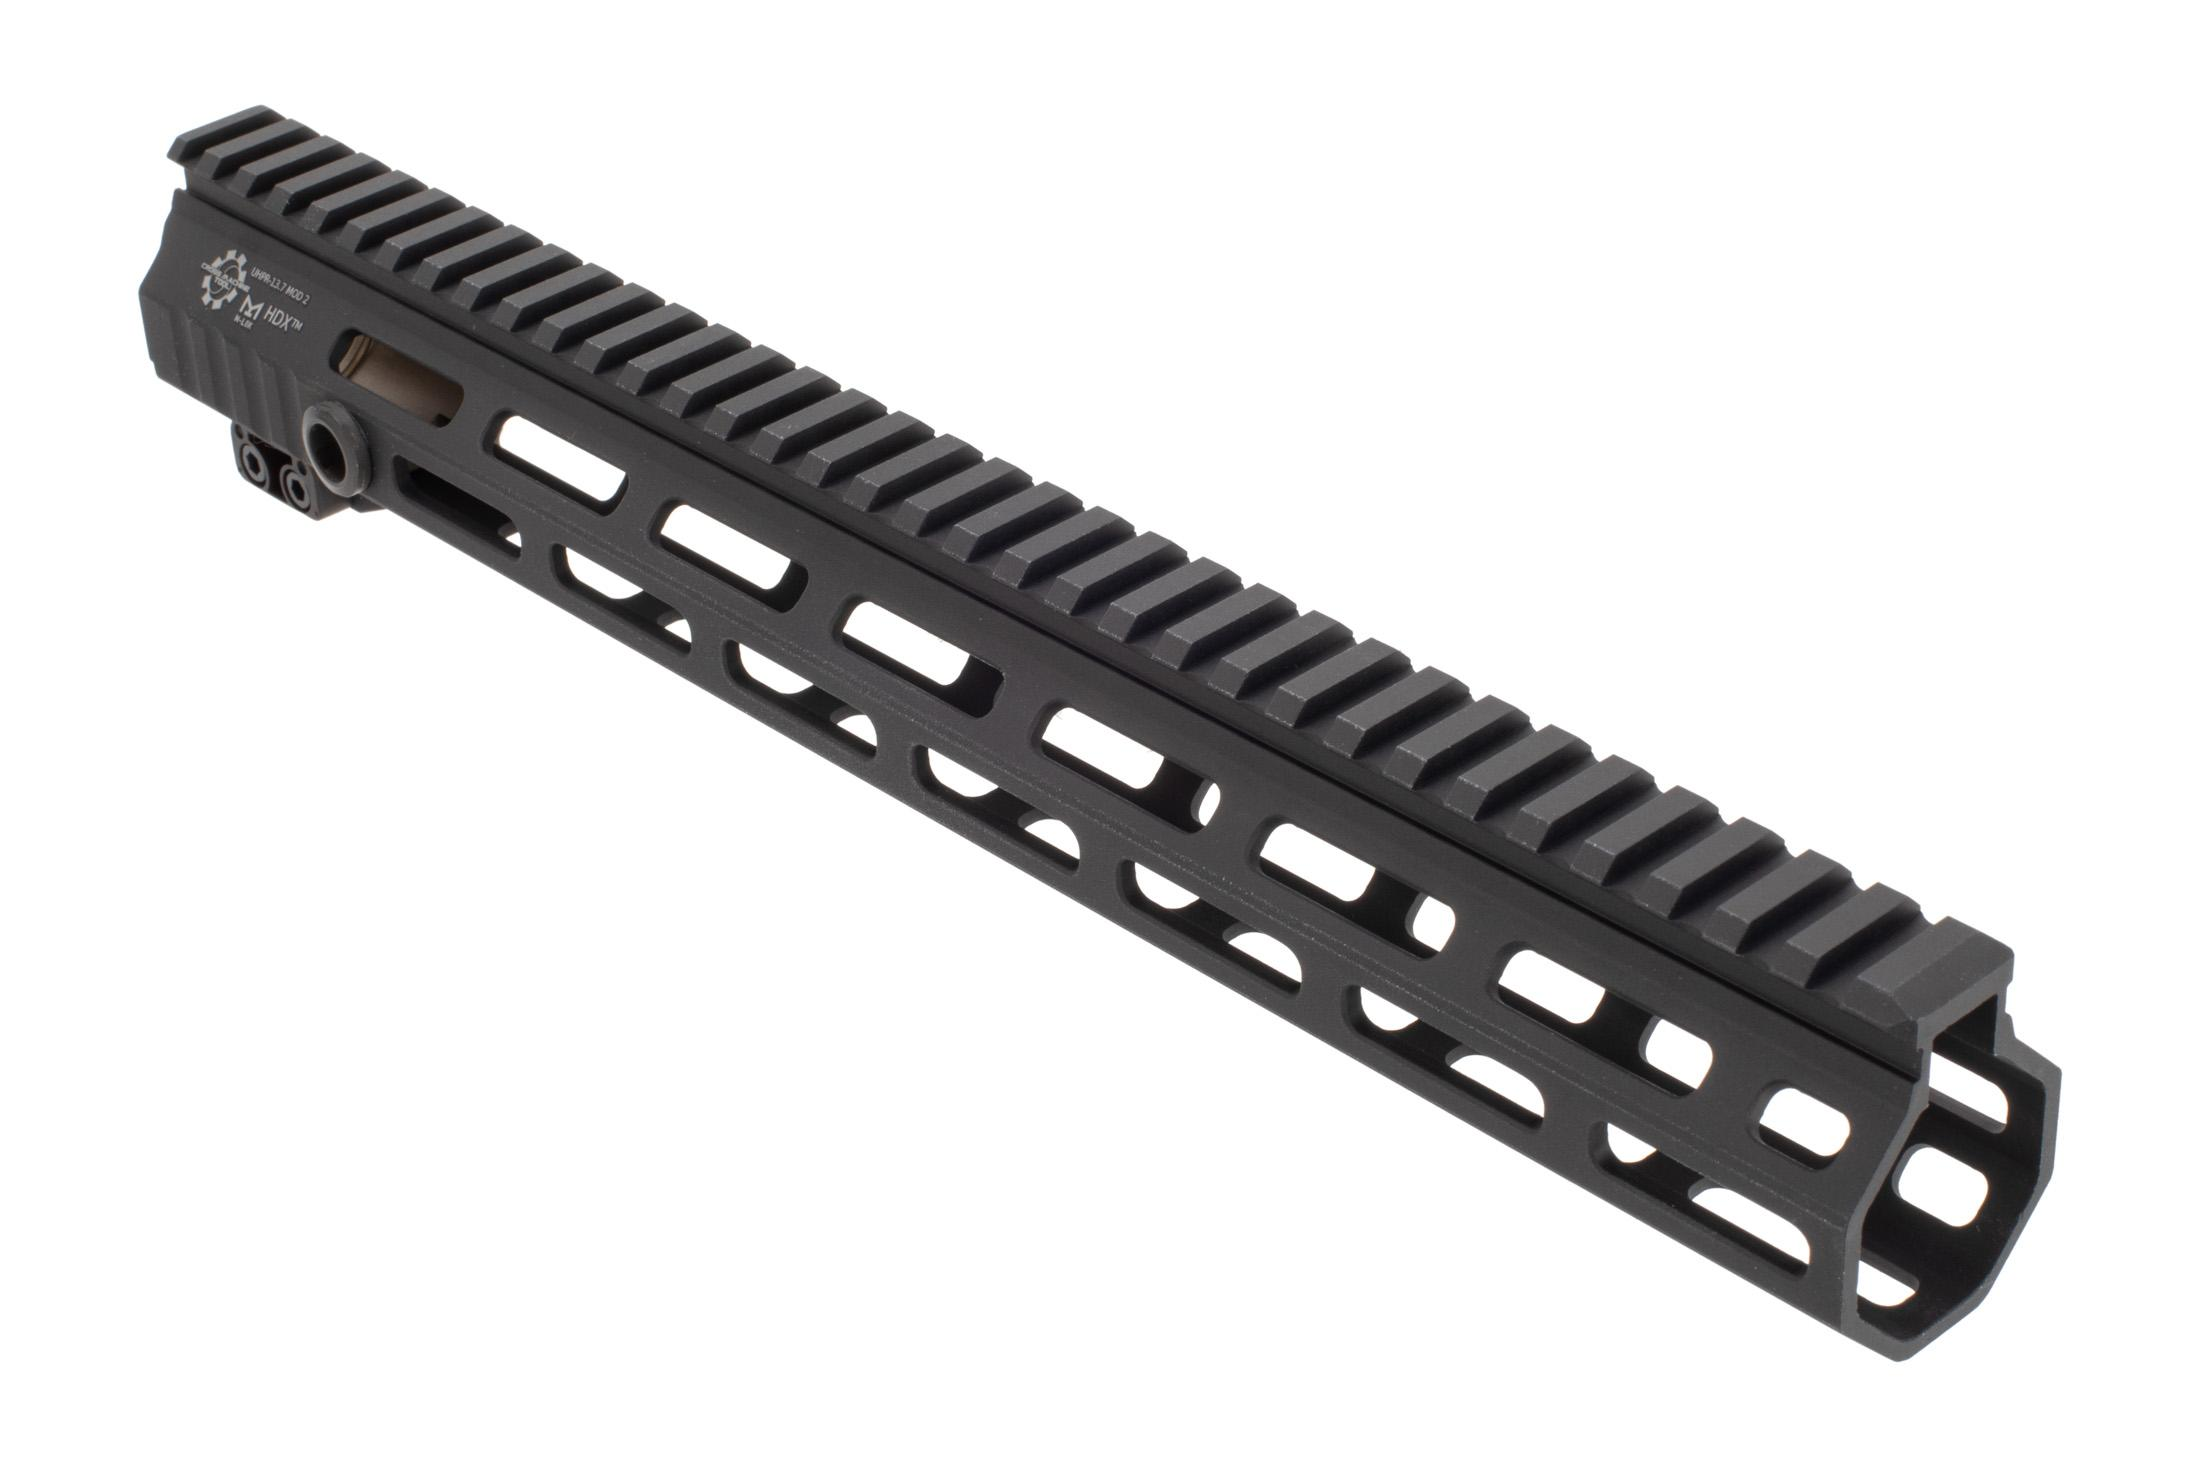 The Cross Machine Tool UHPR Mod 2 HDX M-LOK handguard 13.7 is machined from 7075-T6 aluminum